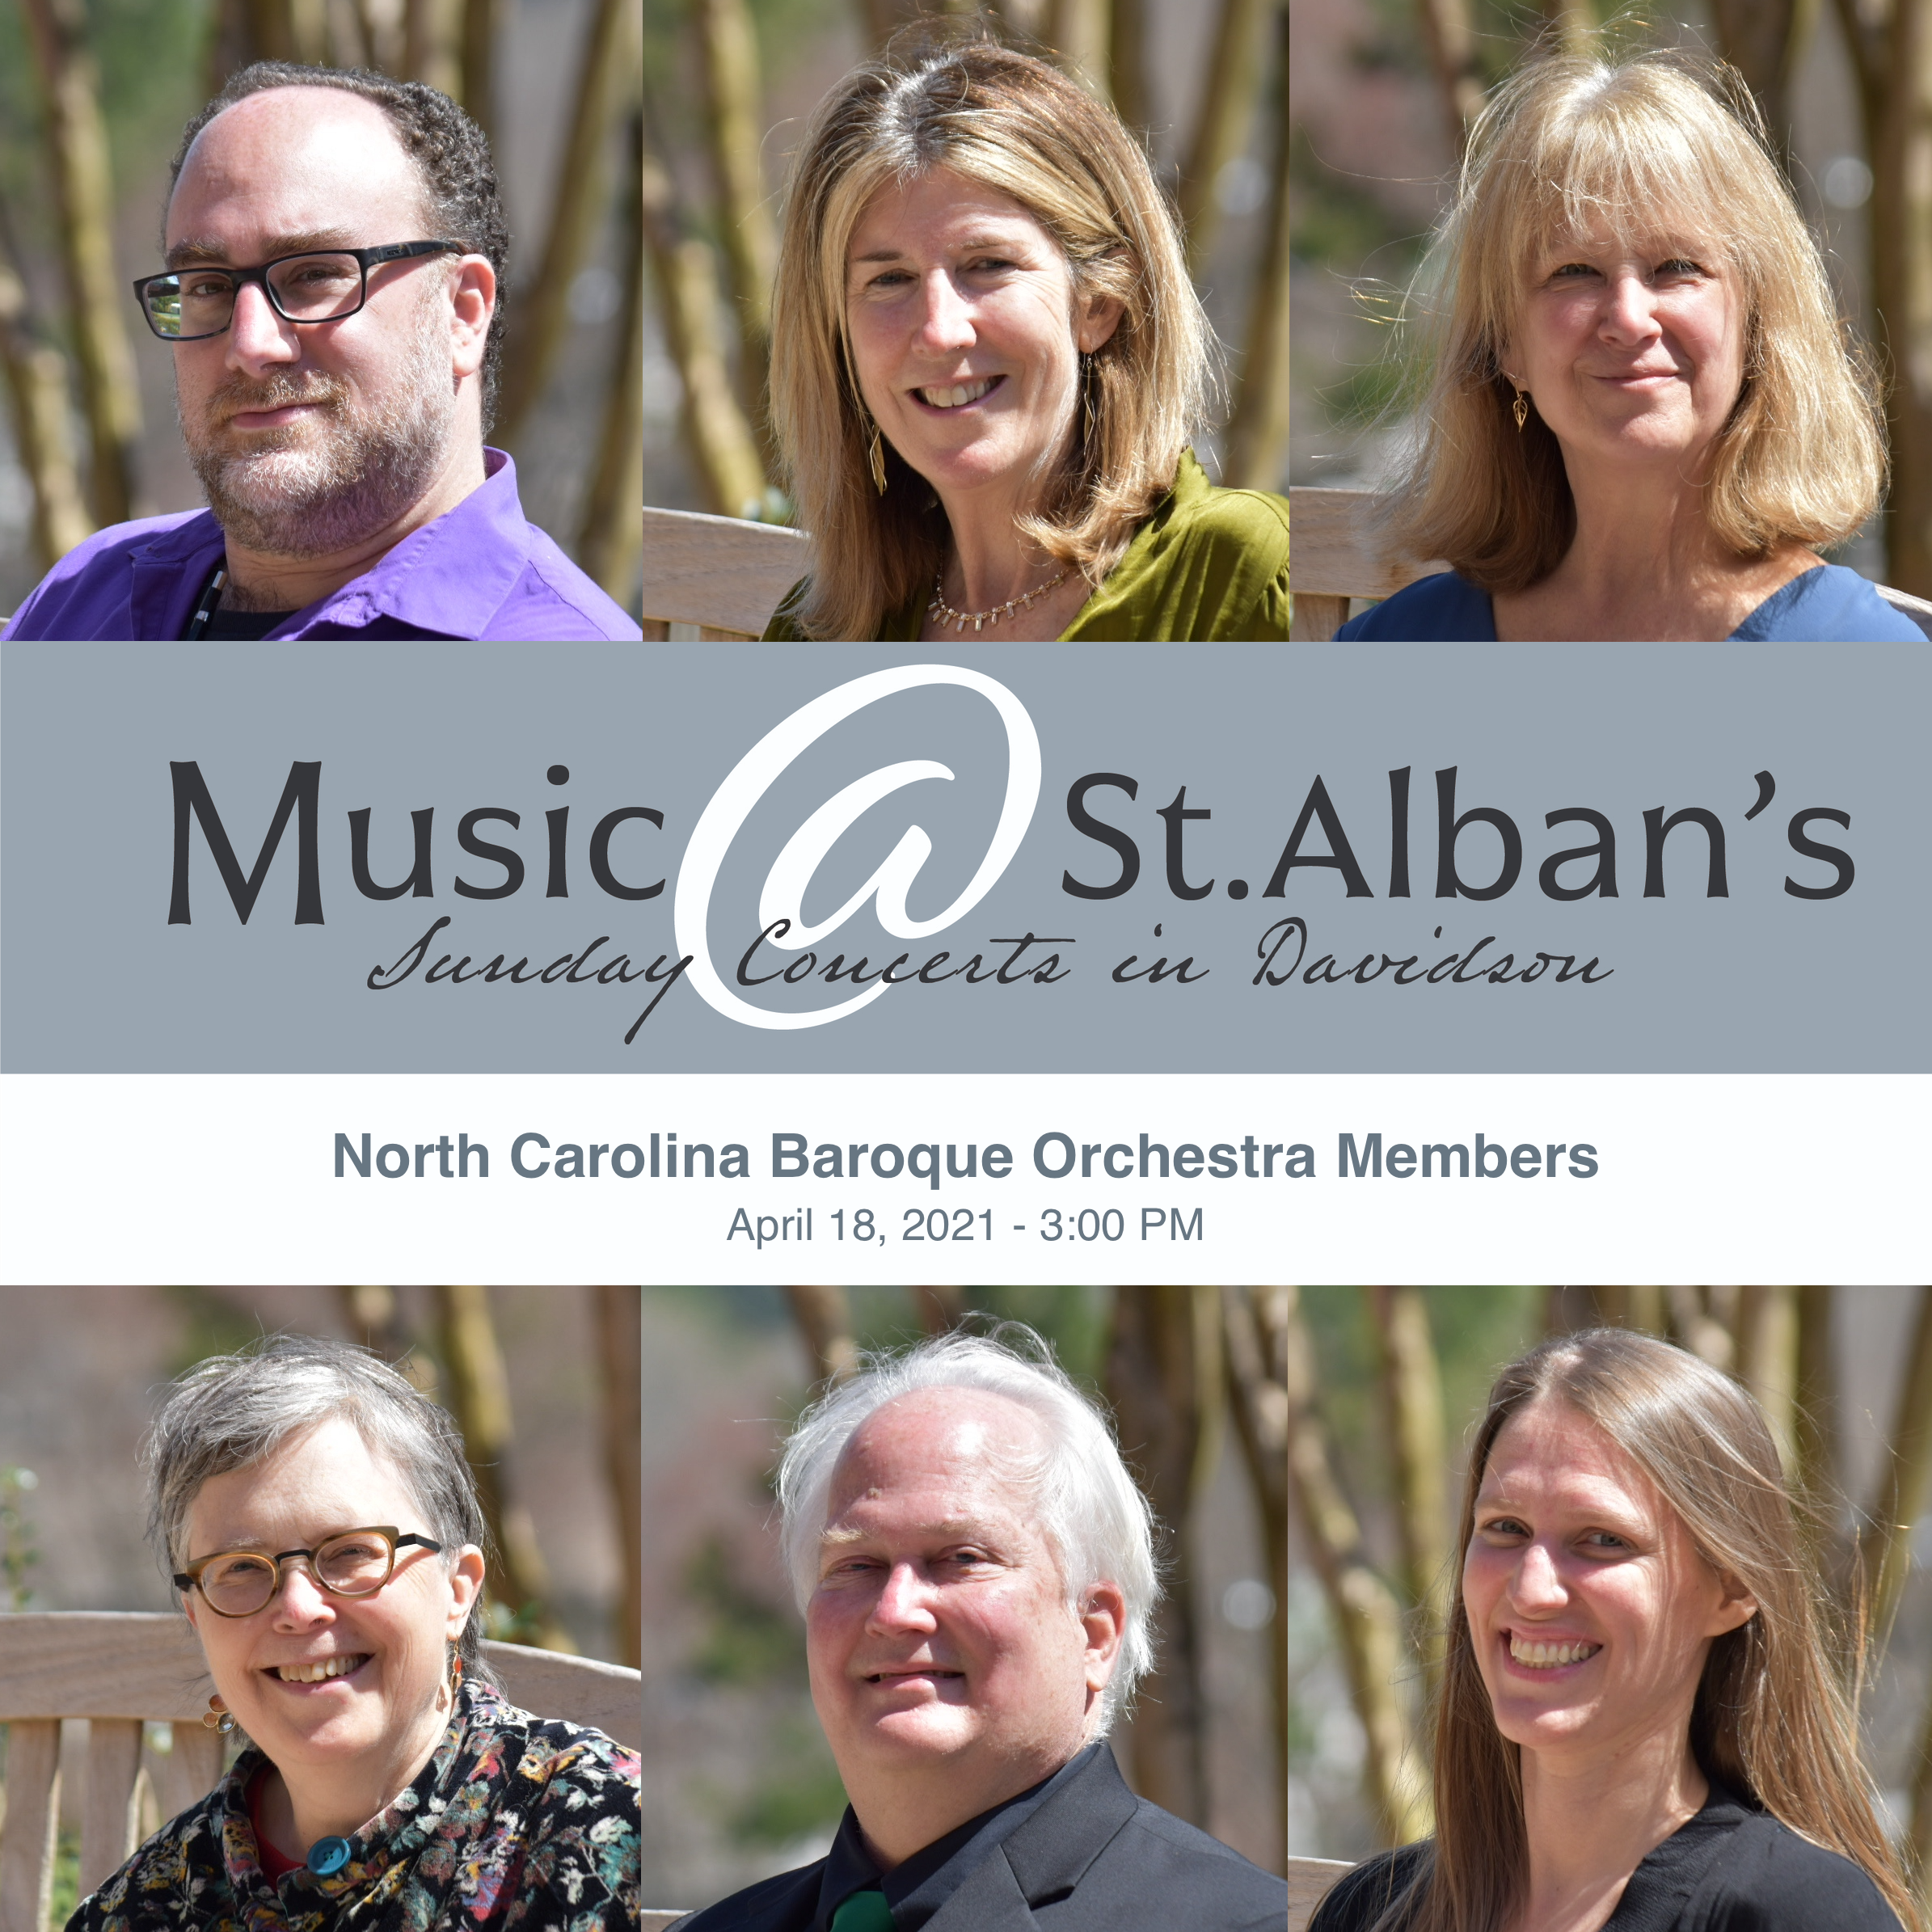 North Carolina Baroque Orchestra Members